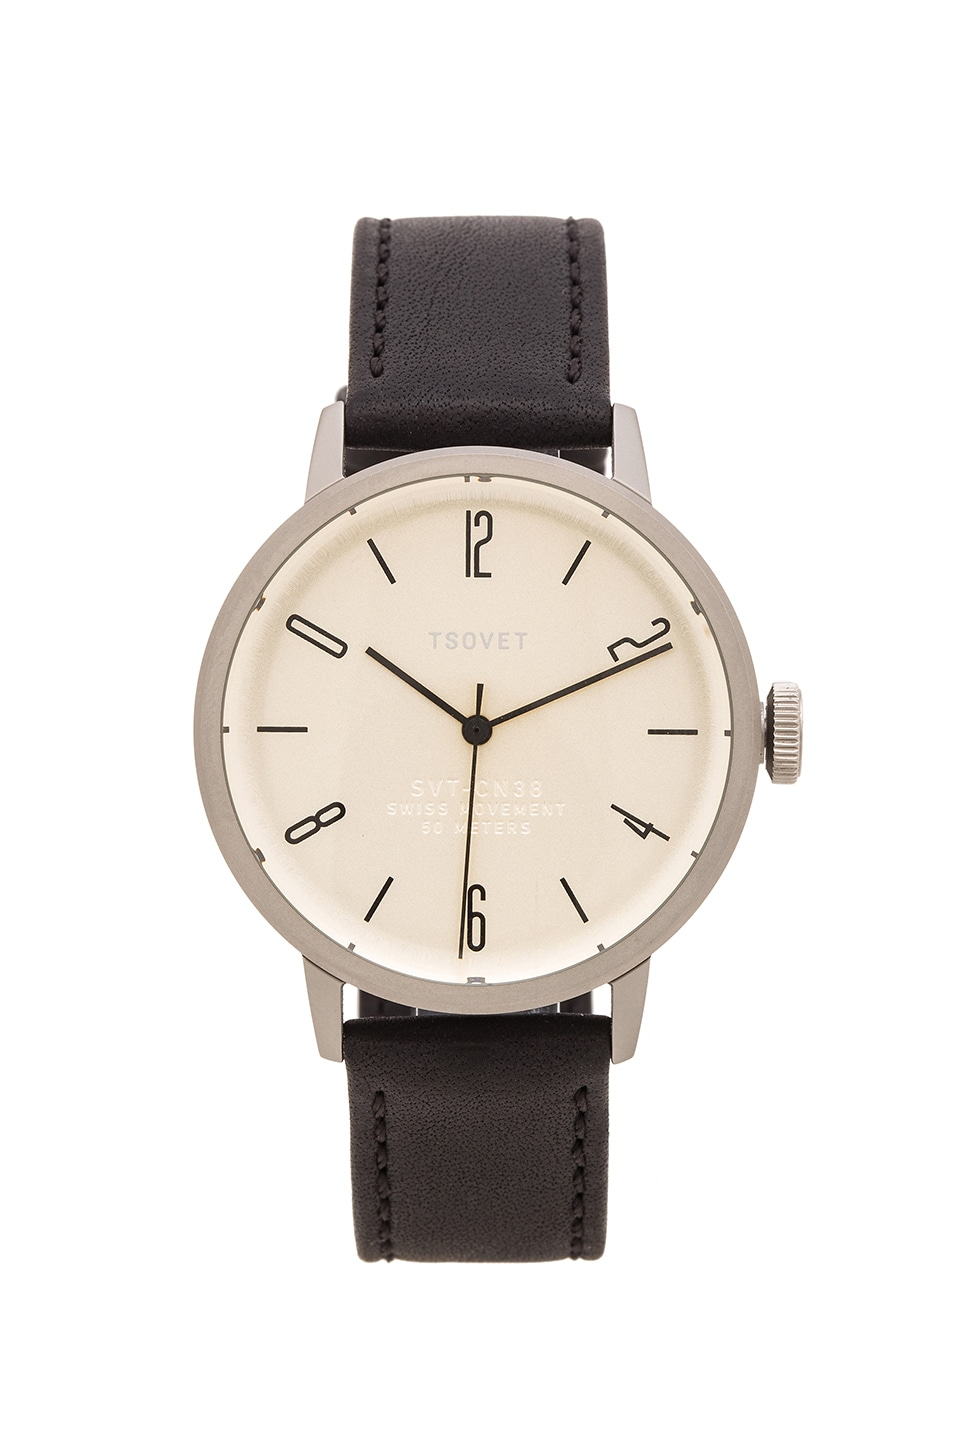 Tsovet SVT-CN38 in Stainless/Champagne/Black